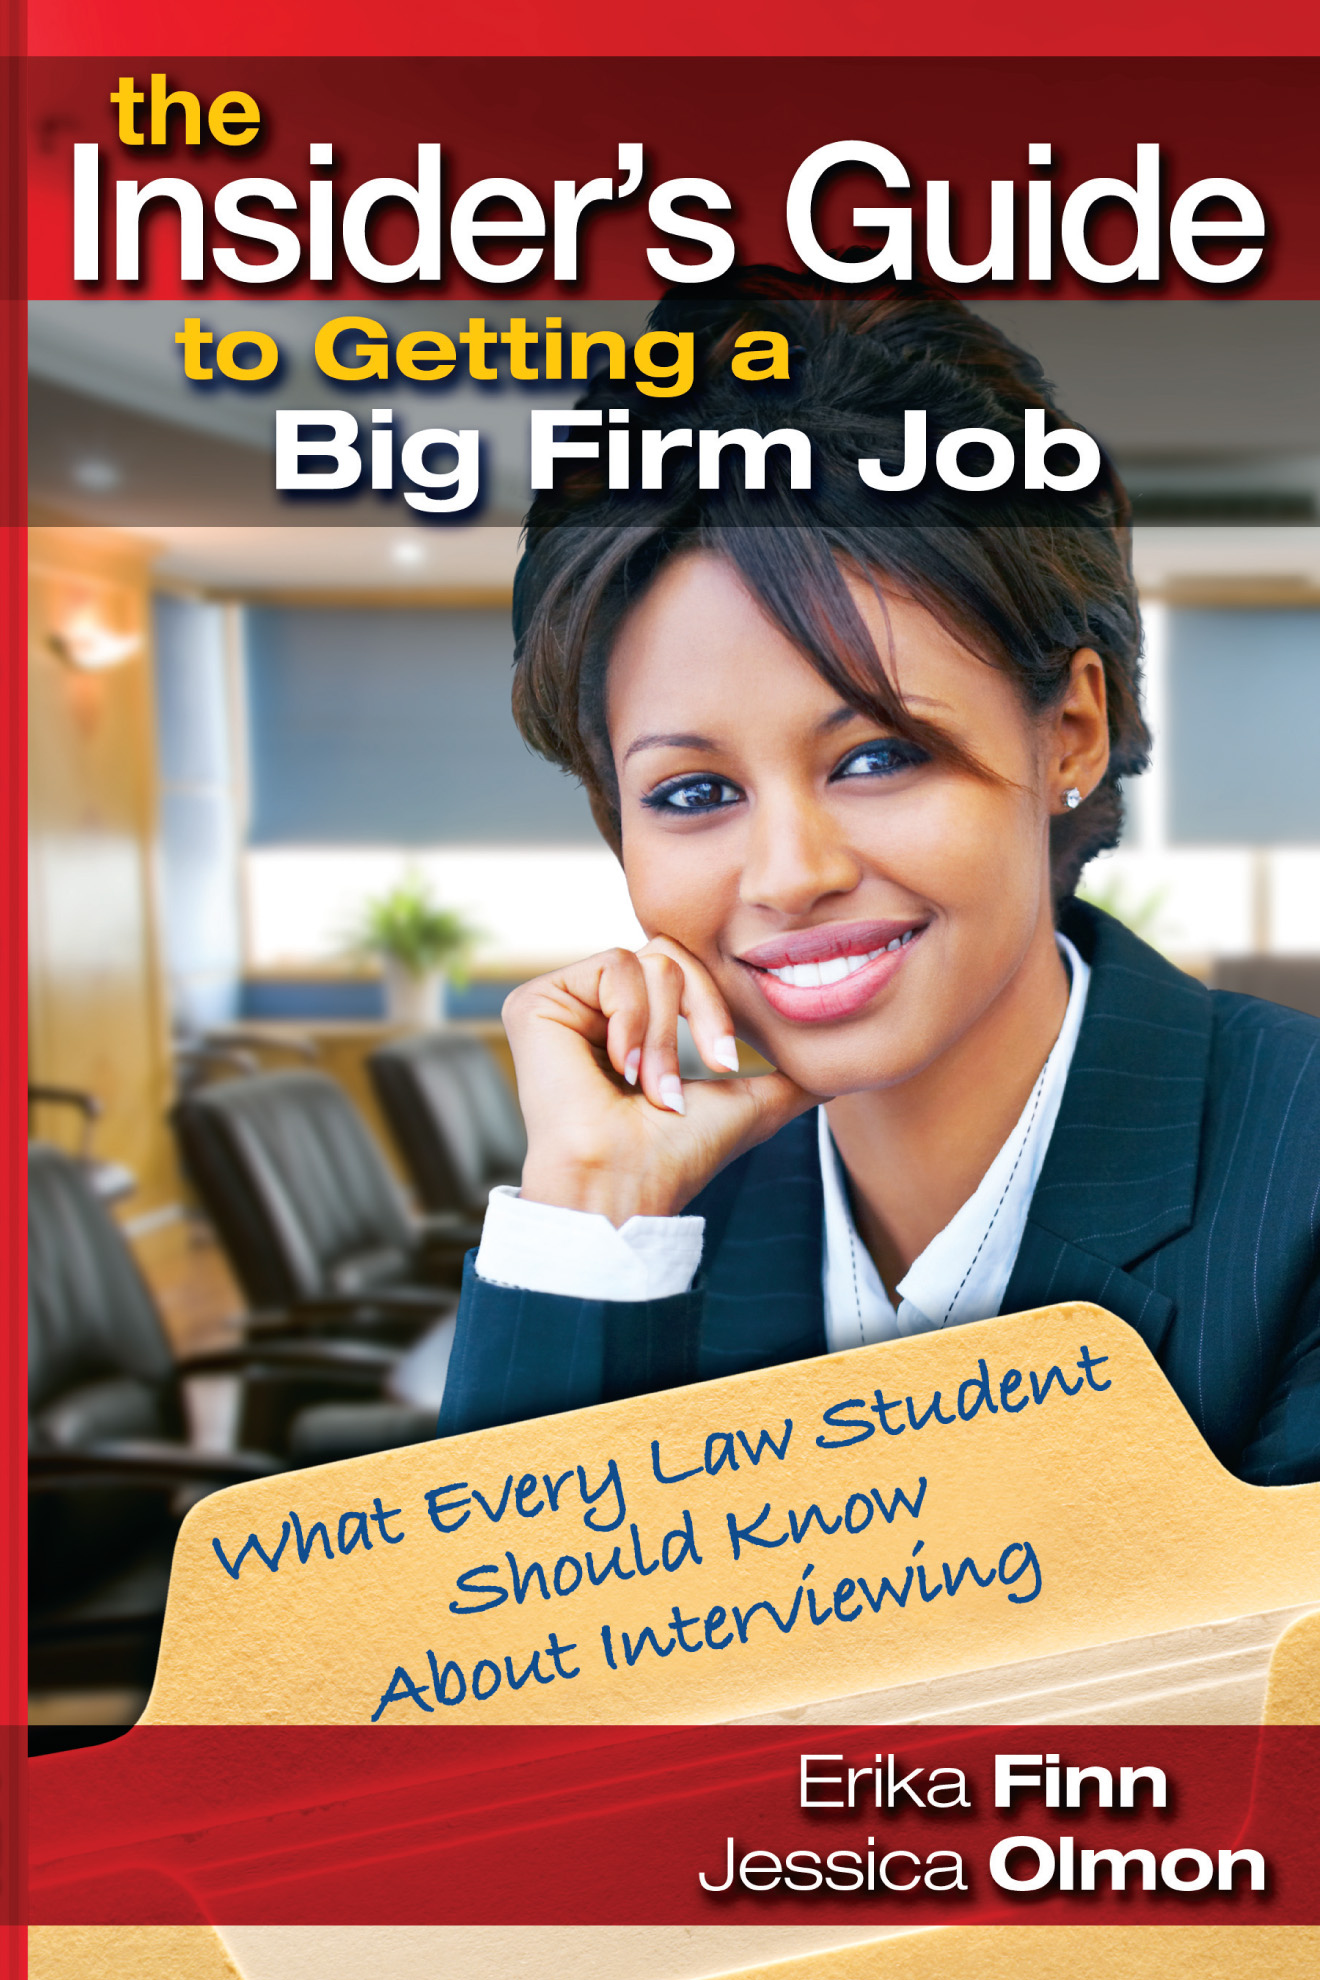 The Insider's Guide to Getting a Big Firm Job